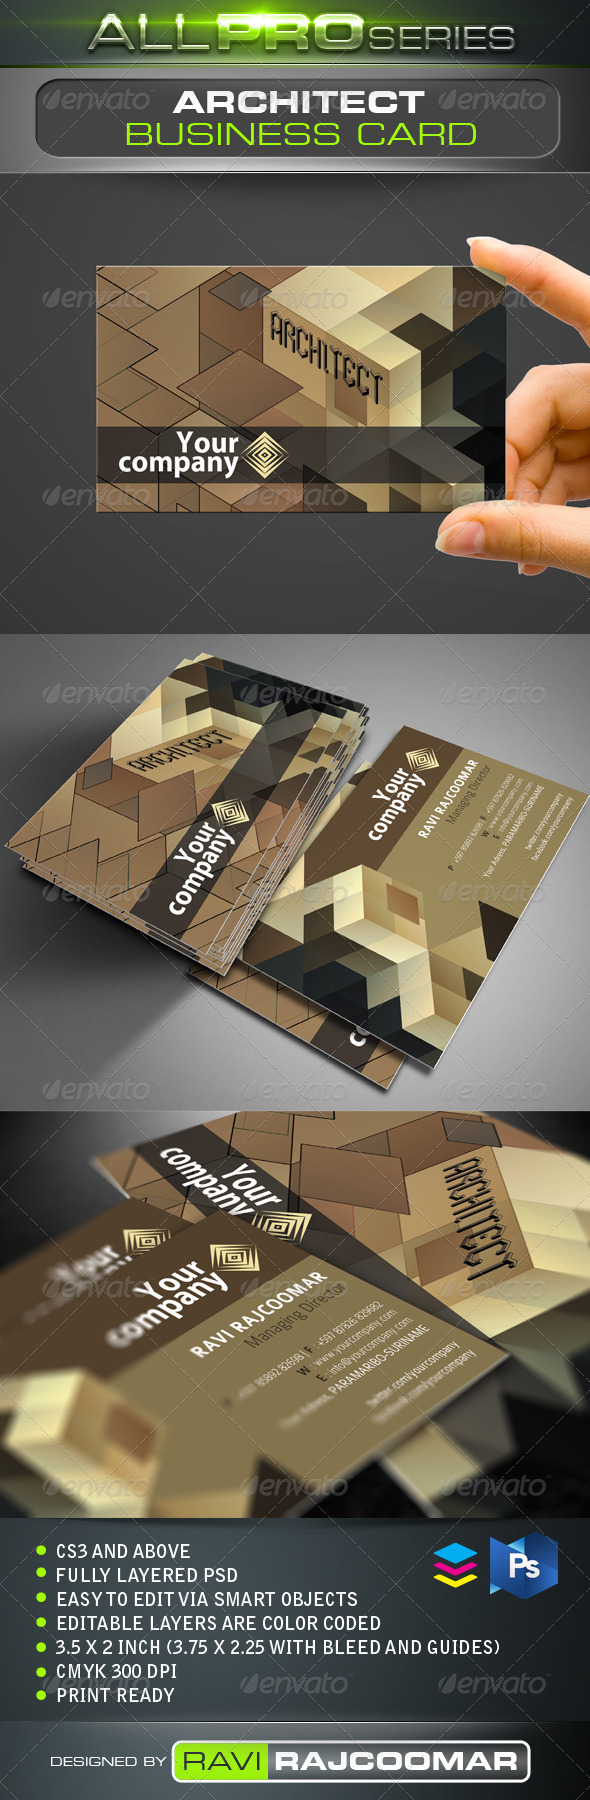 Architect Business Card - Creative Business Cards